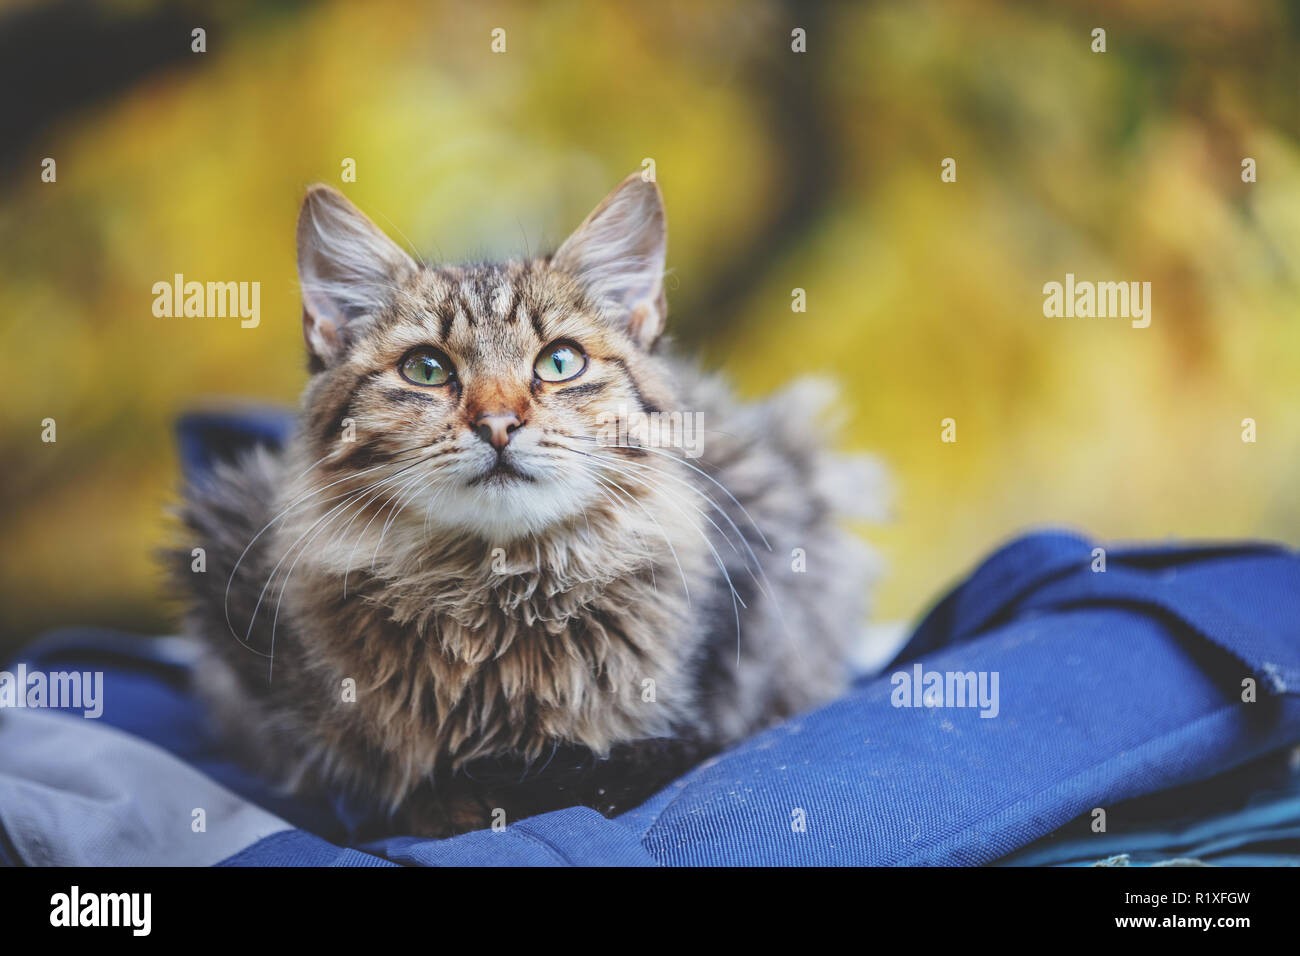 Siberian cat sitting on a bag in the garden - Stock Image